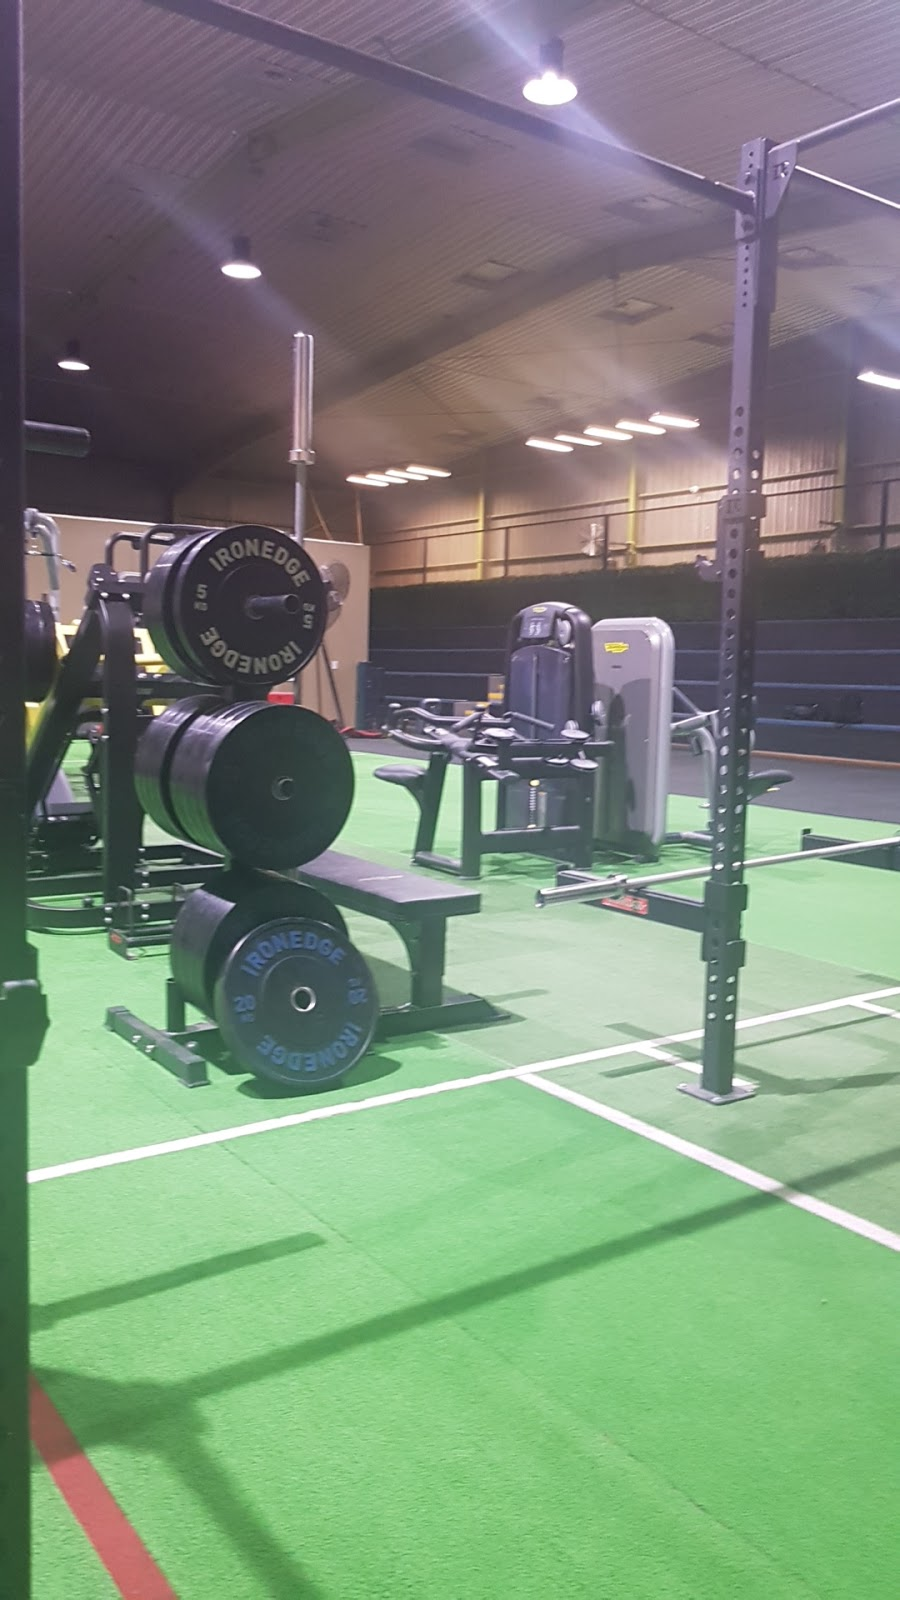 Stawell Sports and Aquatic Centre | gym | 49/51 Houston St, Stawell VIC 3380, Australia | 0353580550 OR +61 3 5358 0550